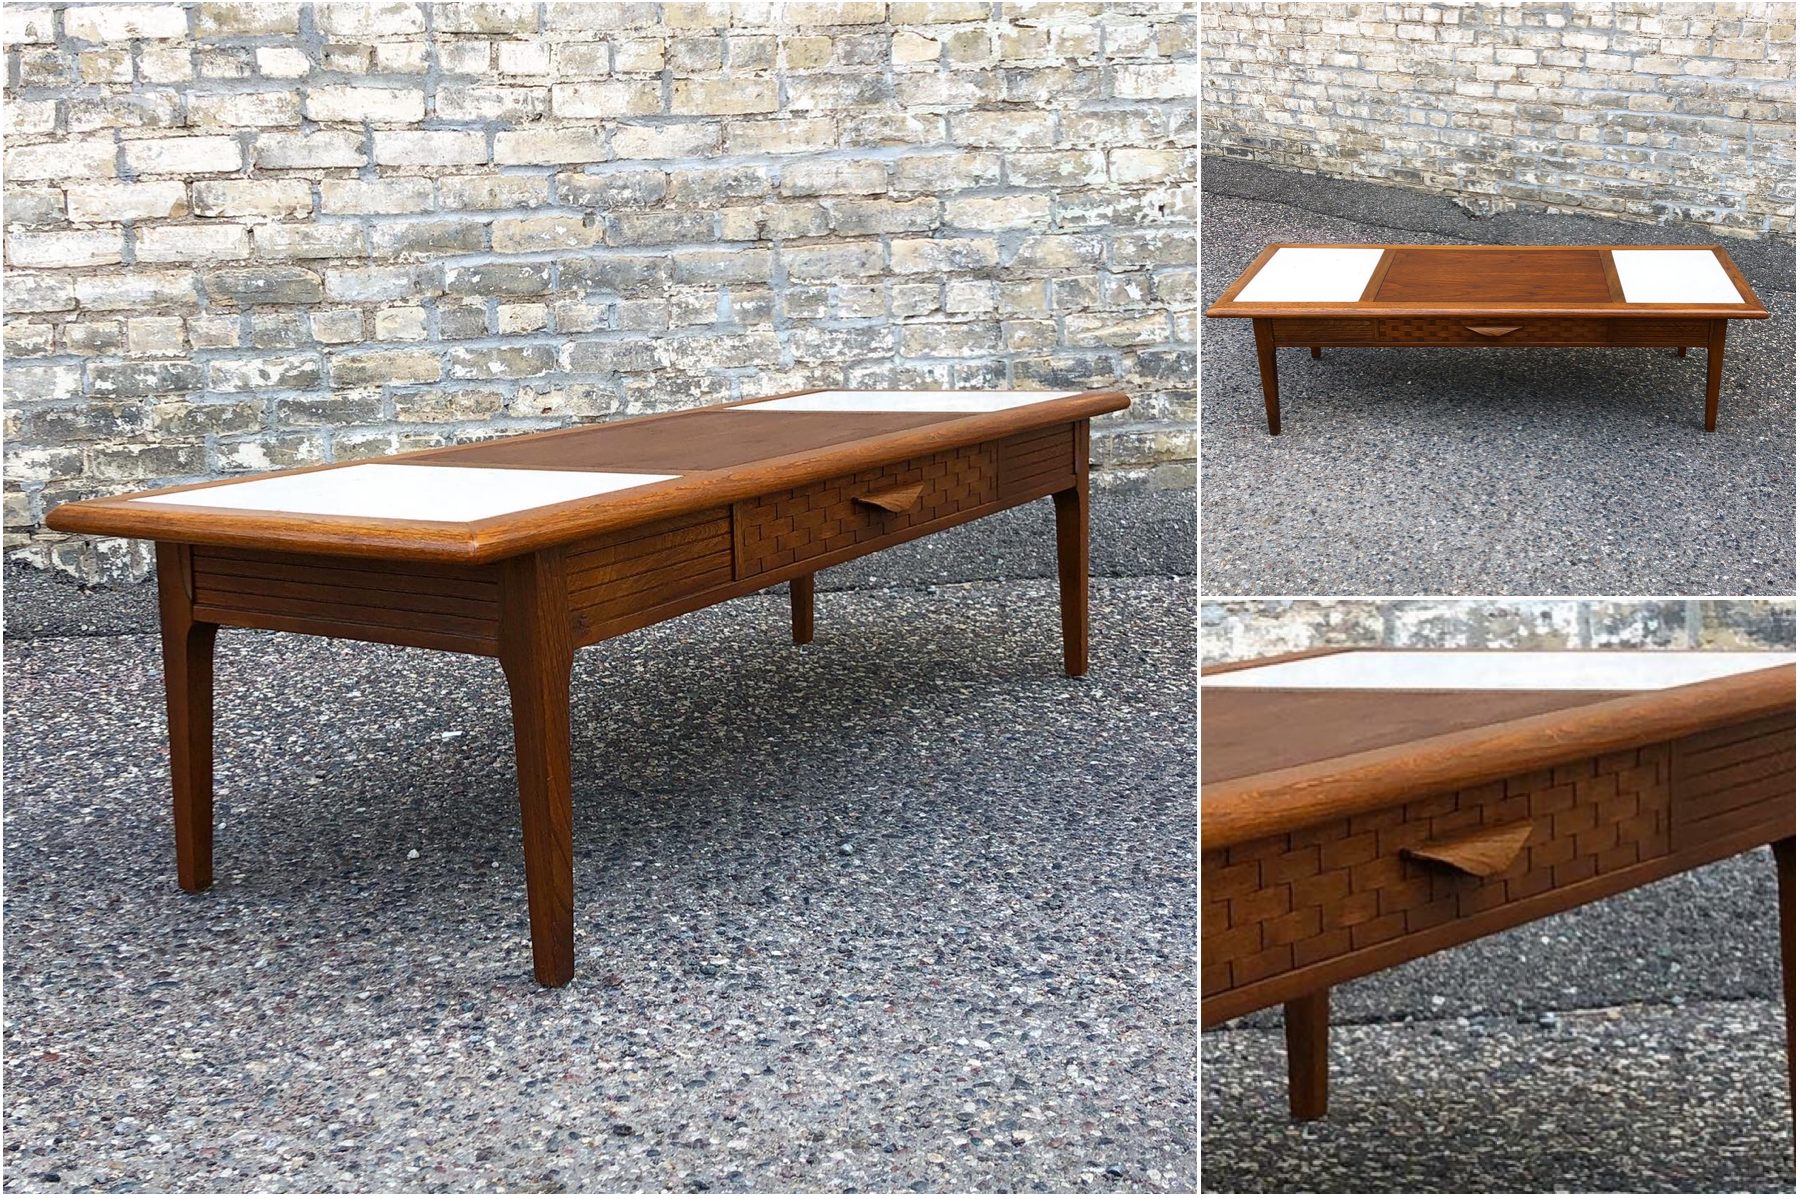 KLM_coffee-table_travertine-insets_COLLAGE